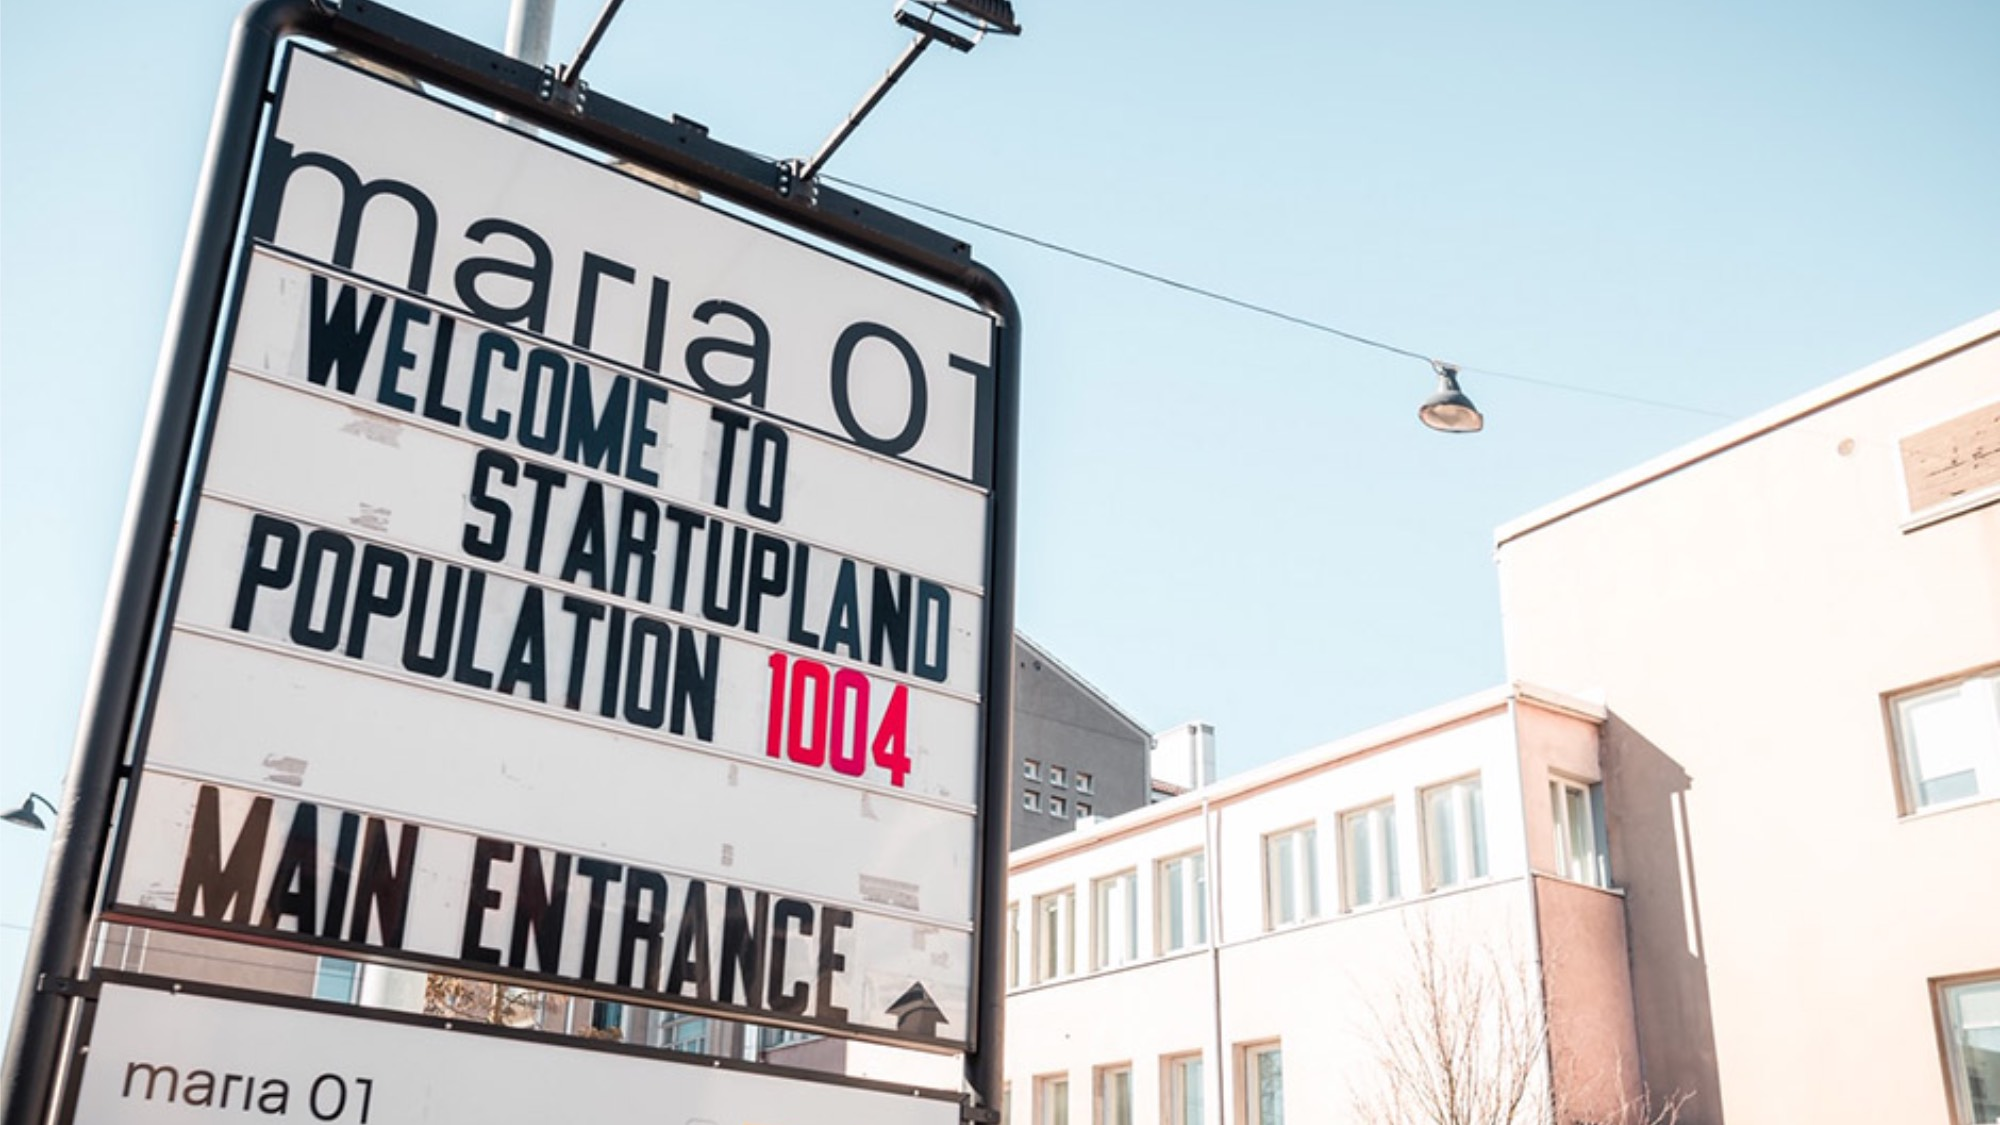 A sign outside the Maria 01 startup campus displaying the number of startup residents